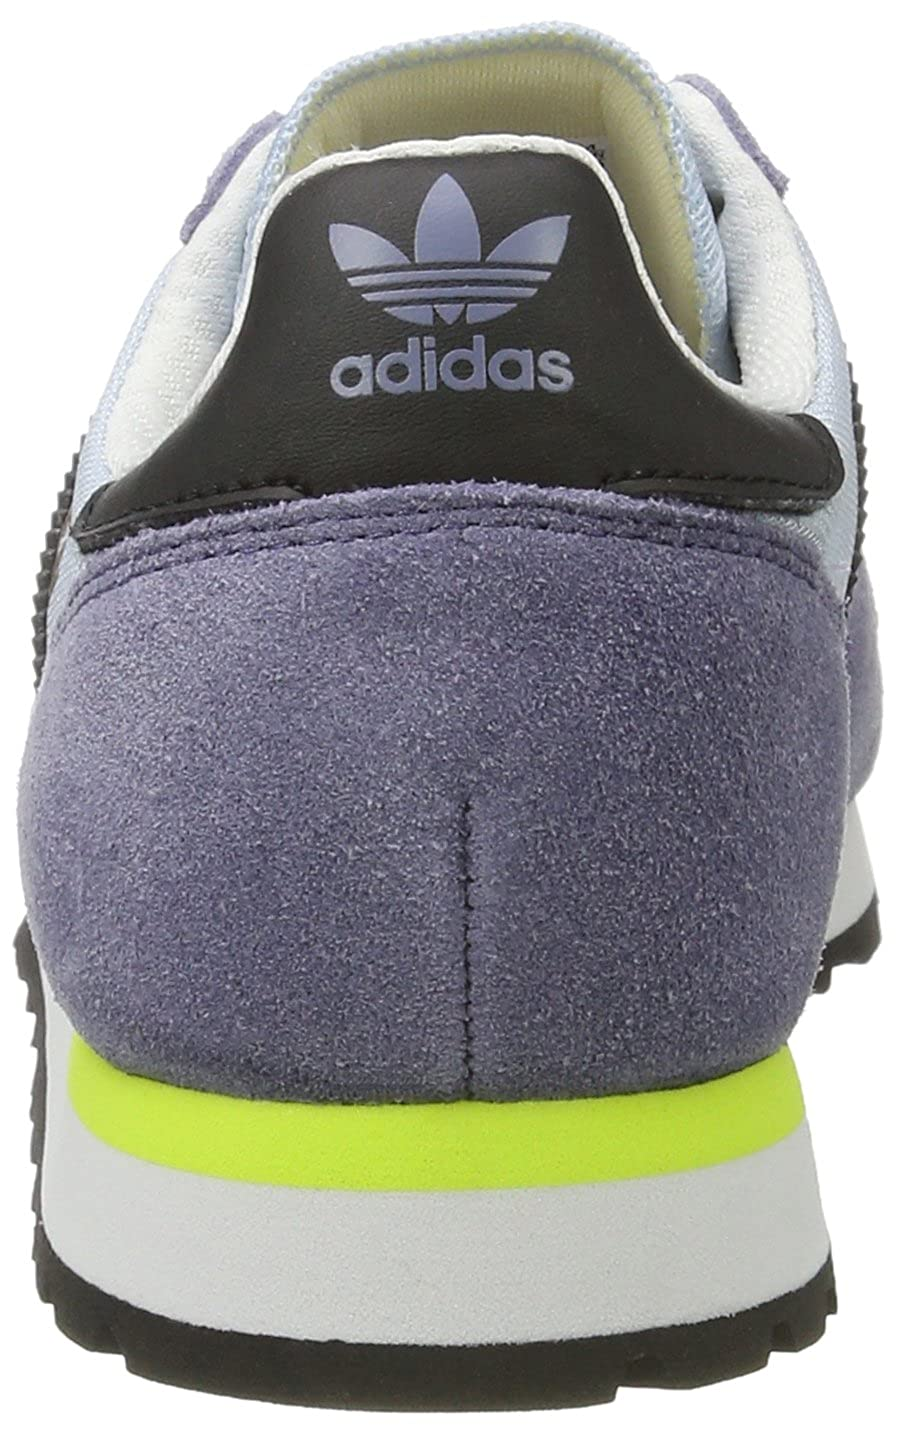 adidas adidas adidas Haven, Zapatillas Unisex Adulto f869b7